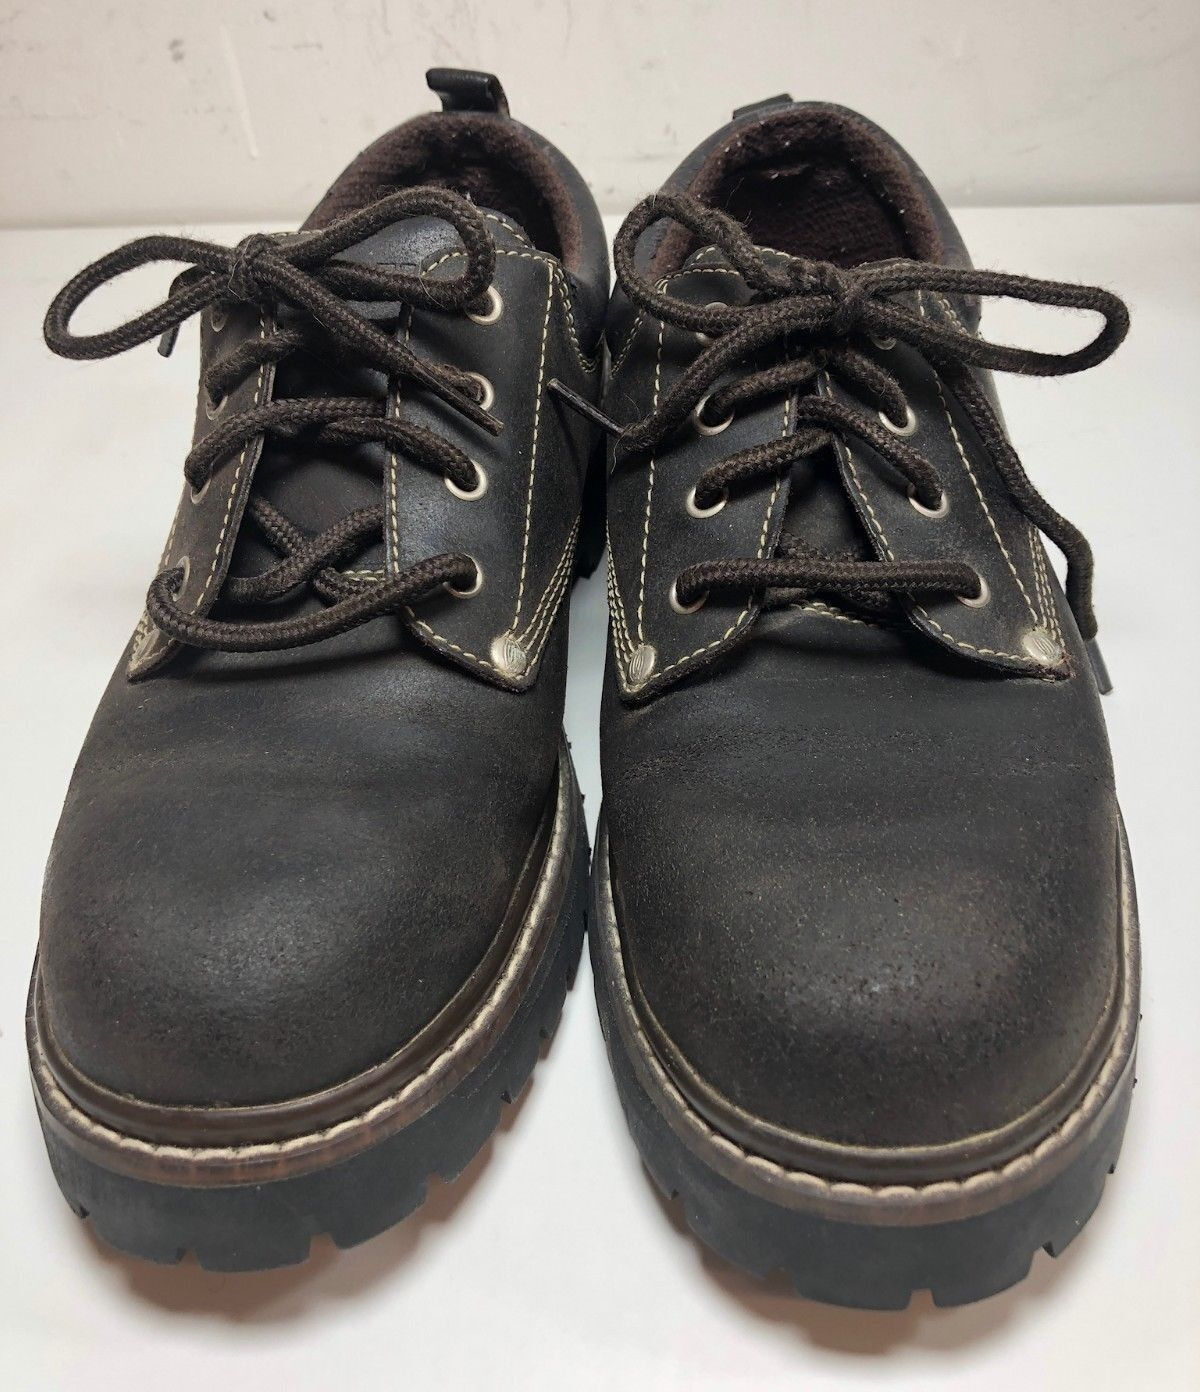 Skechers Womens Oxford Size 9 Deep Brown Style Number 7914